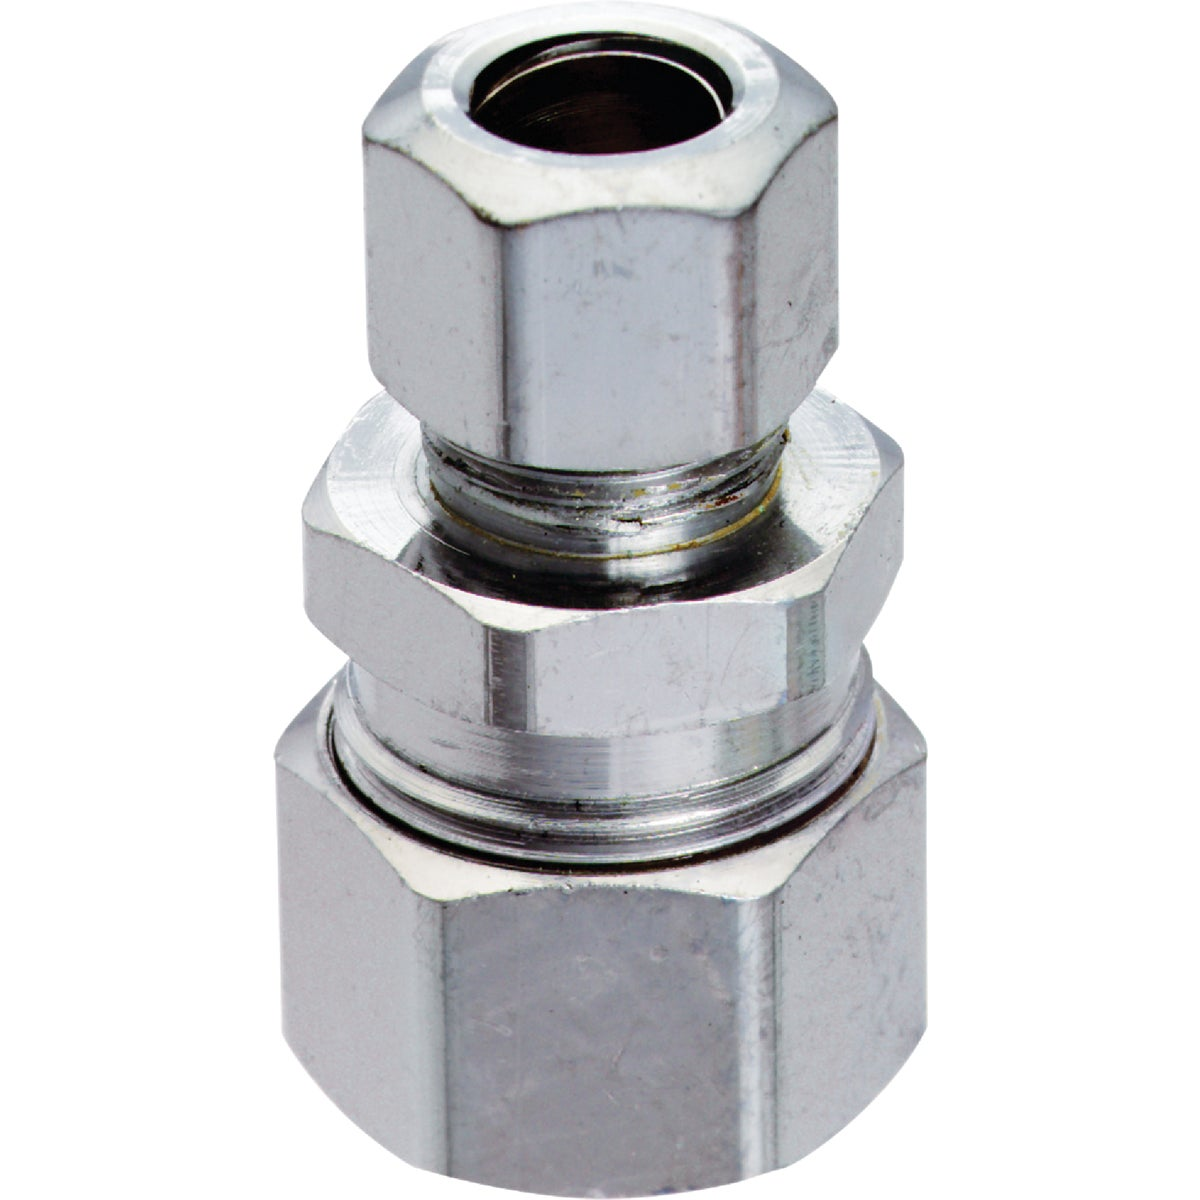 "3/8"" FAUCET ADAPTER - 456134 by Plumb Pak/keeney Mfg"